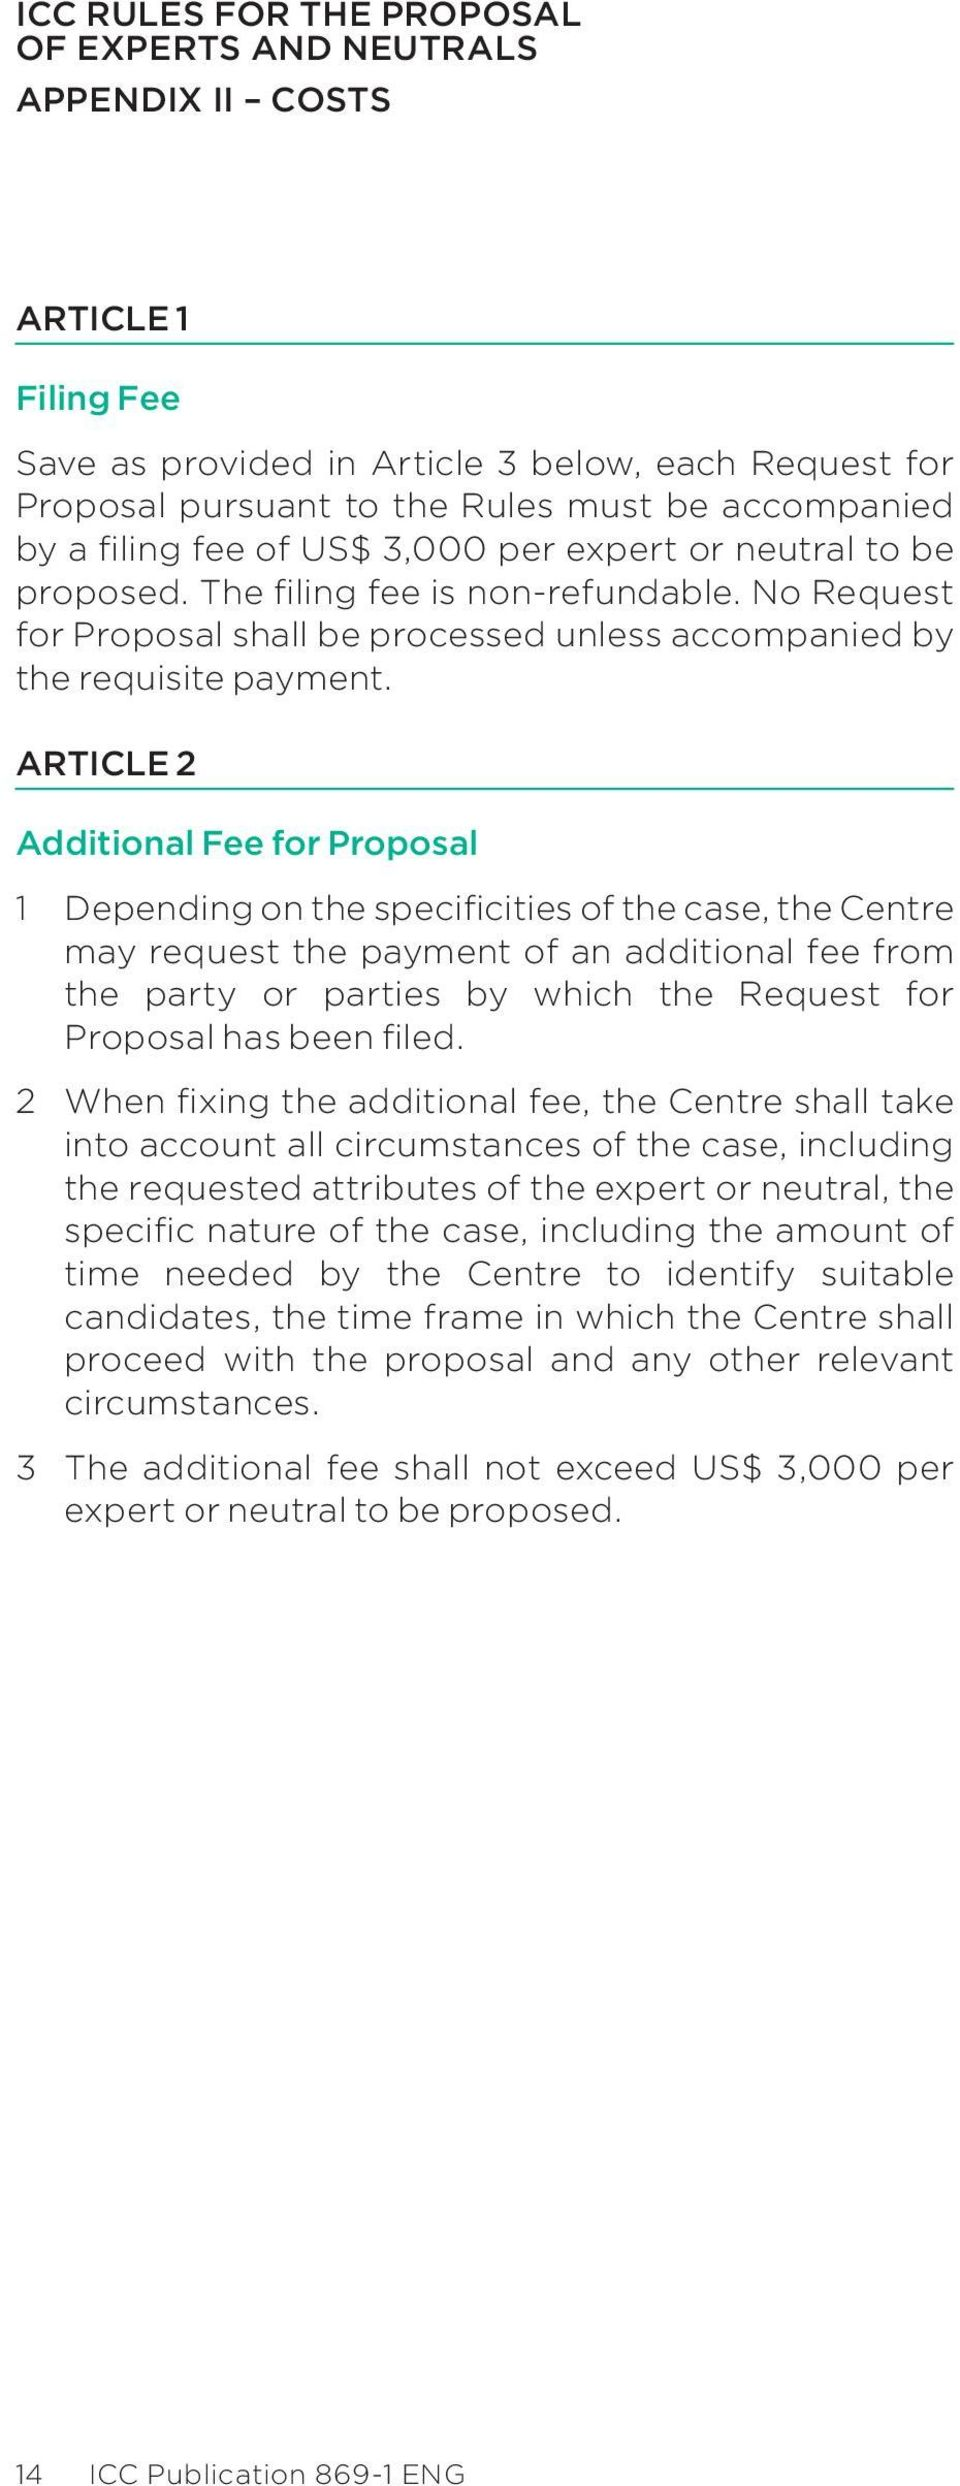 Article 2 Additional Fee for Proposal 1 Depending on the specificities of the case, the Centre may request the payment of an additional fee from the party or parties by which the Request for Proposal